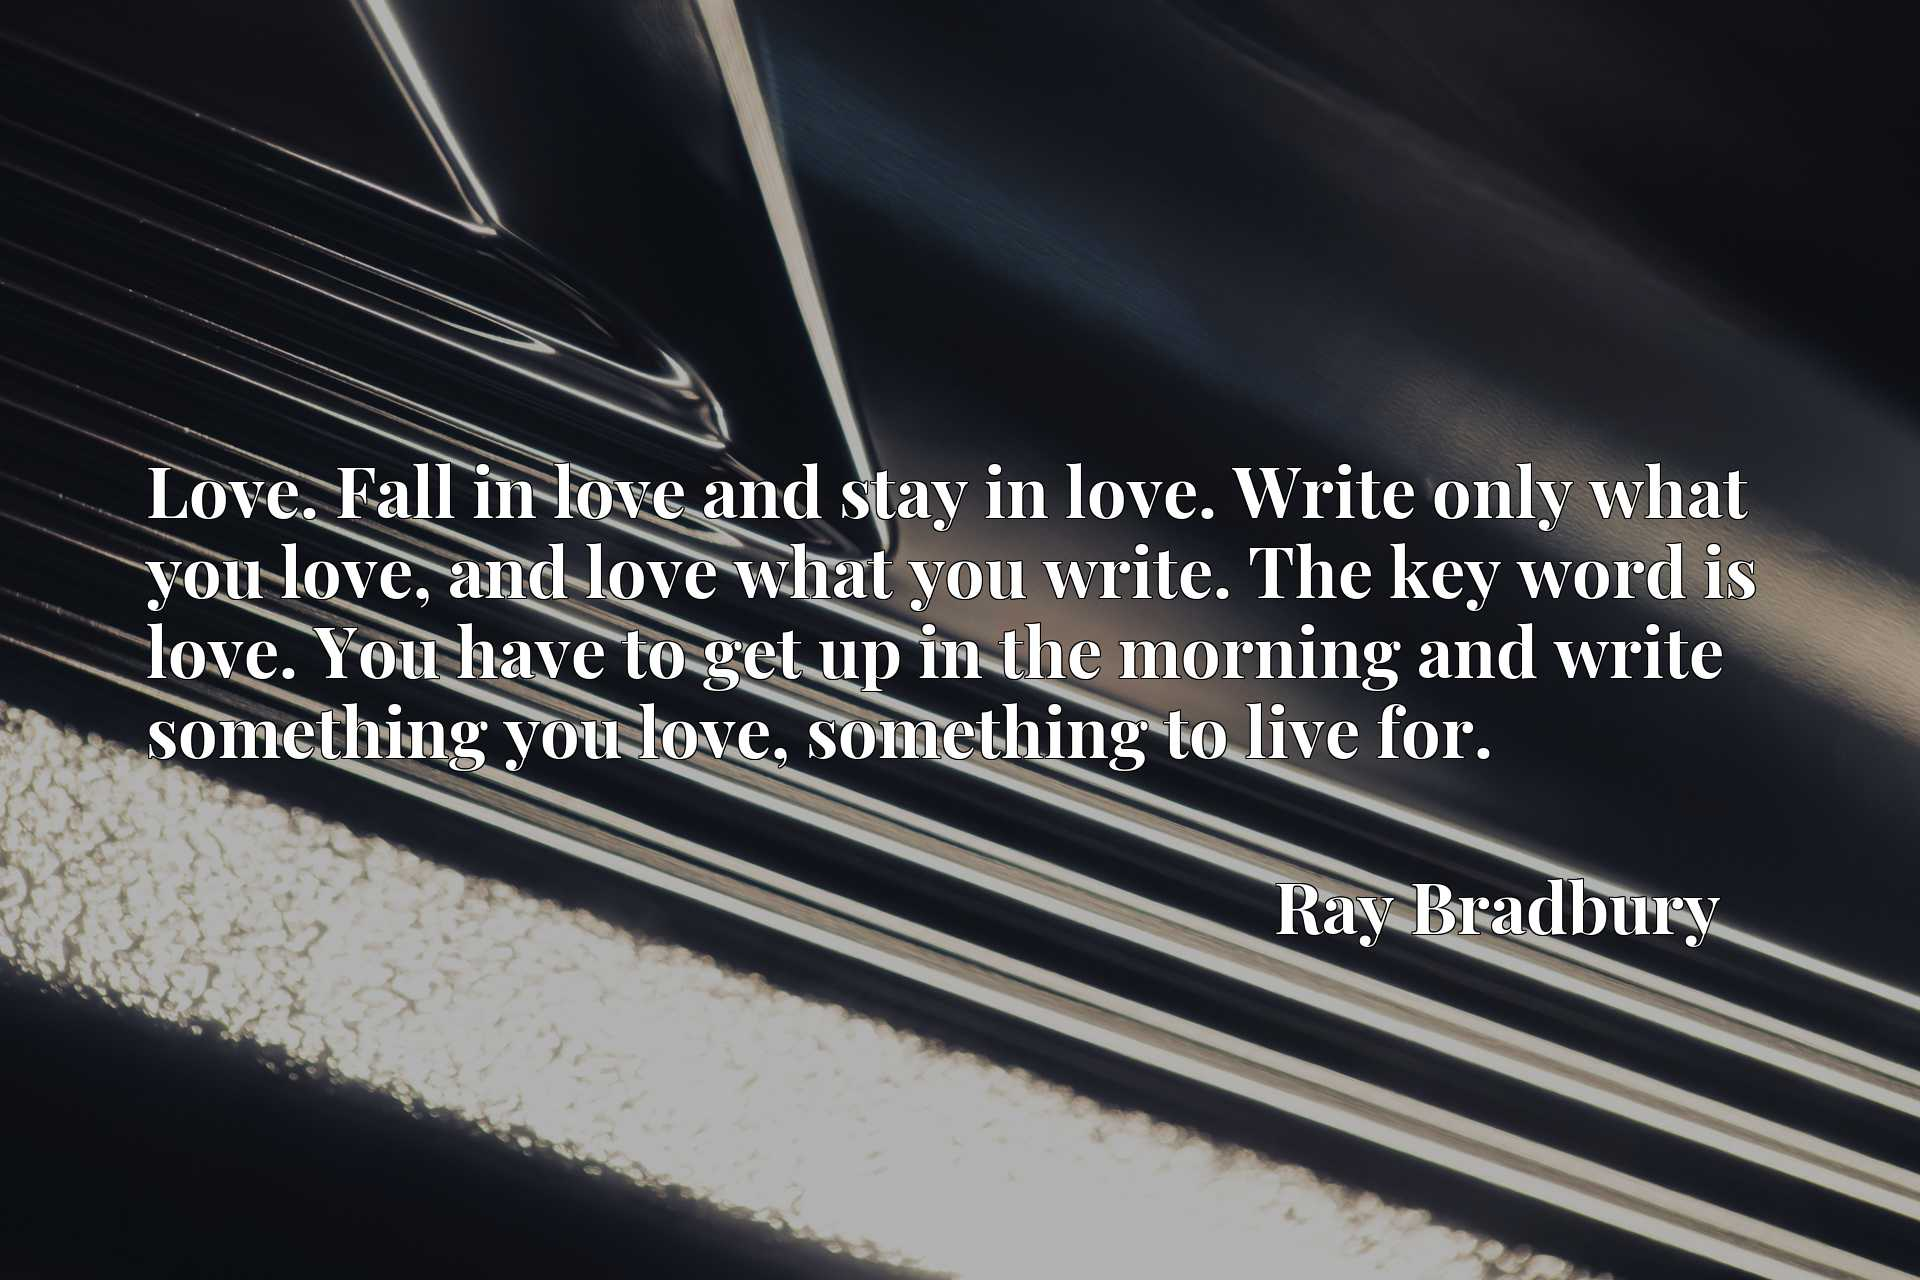 Love. Fall in love and stay in love. Write only what you love, and love what you write. The key word is love. You have to get up in the morning and write something you love, something to live for.